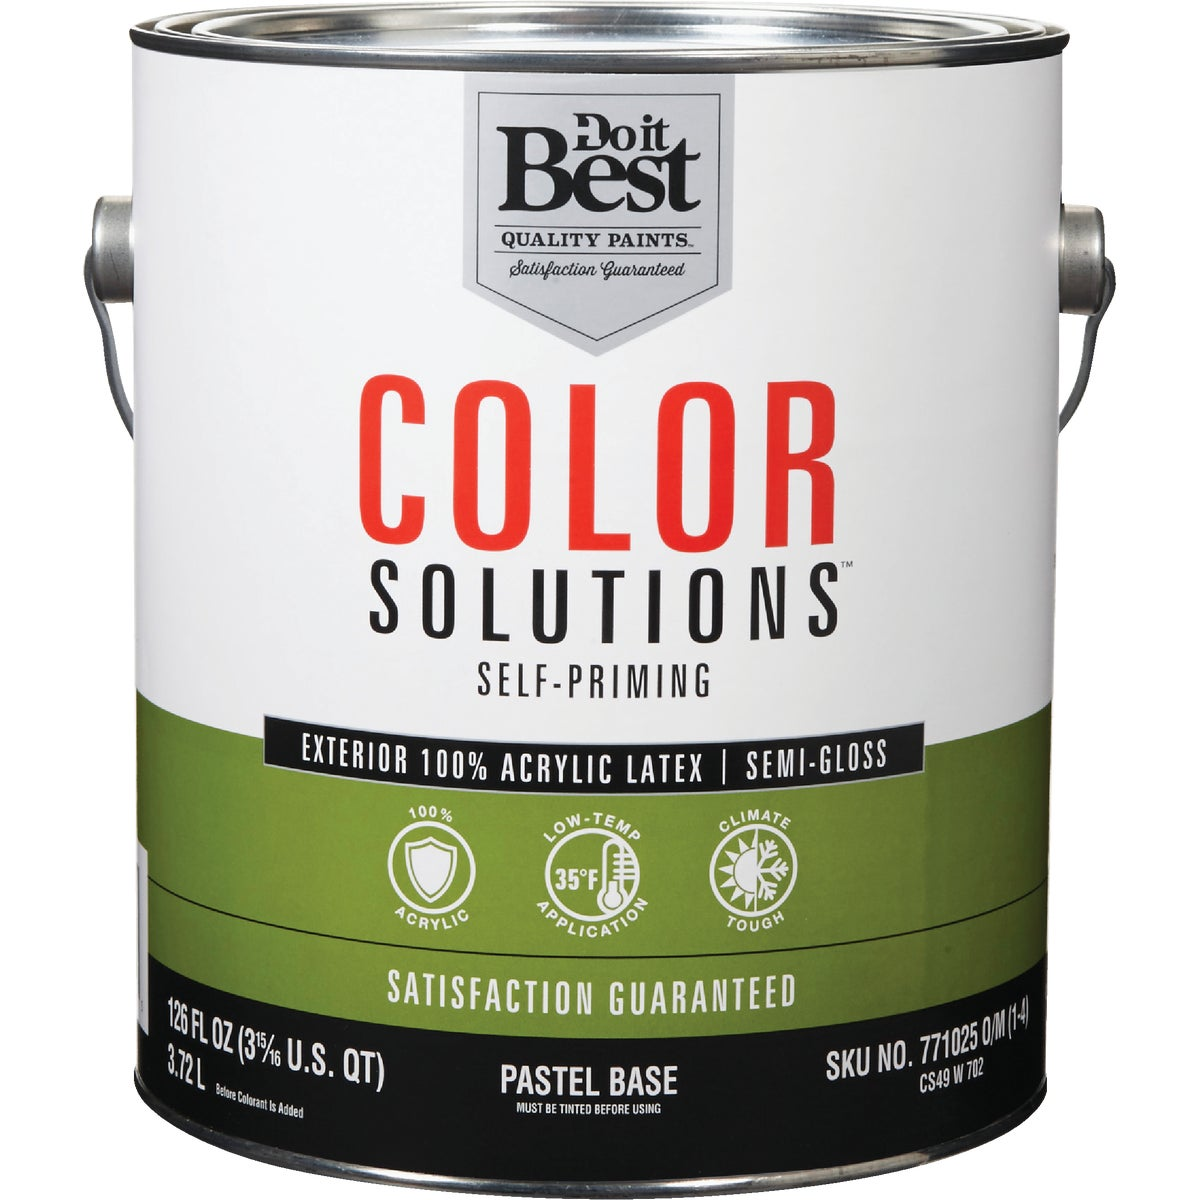 EXT S/G PASTEL BS PAINT - CS49W0702-16 by Do it Best